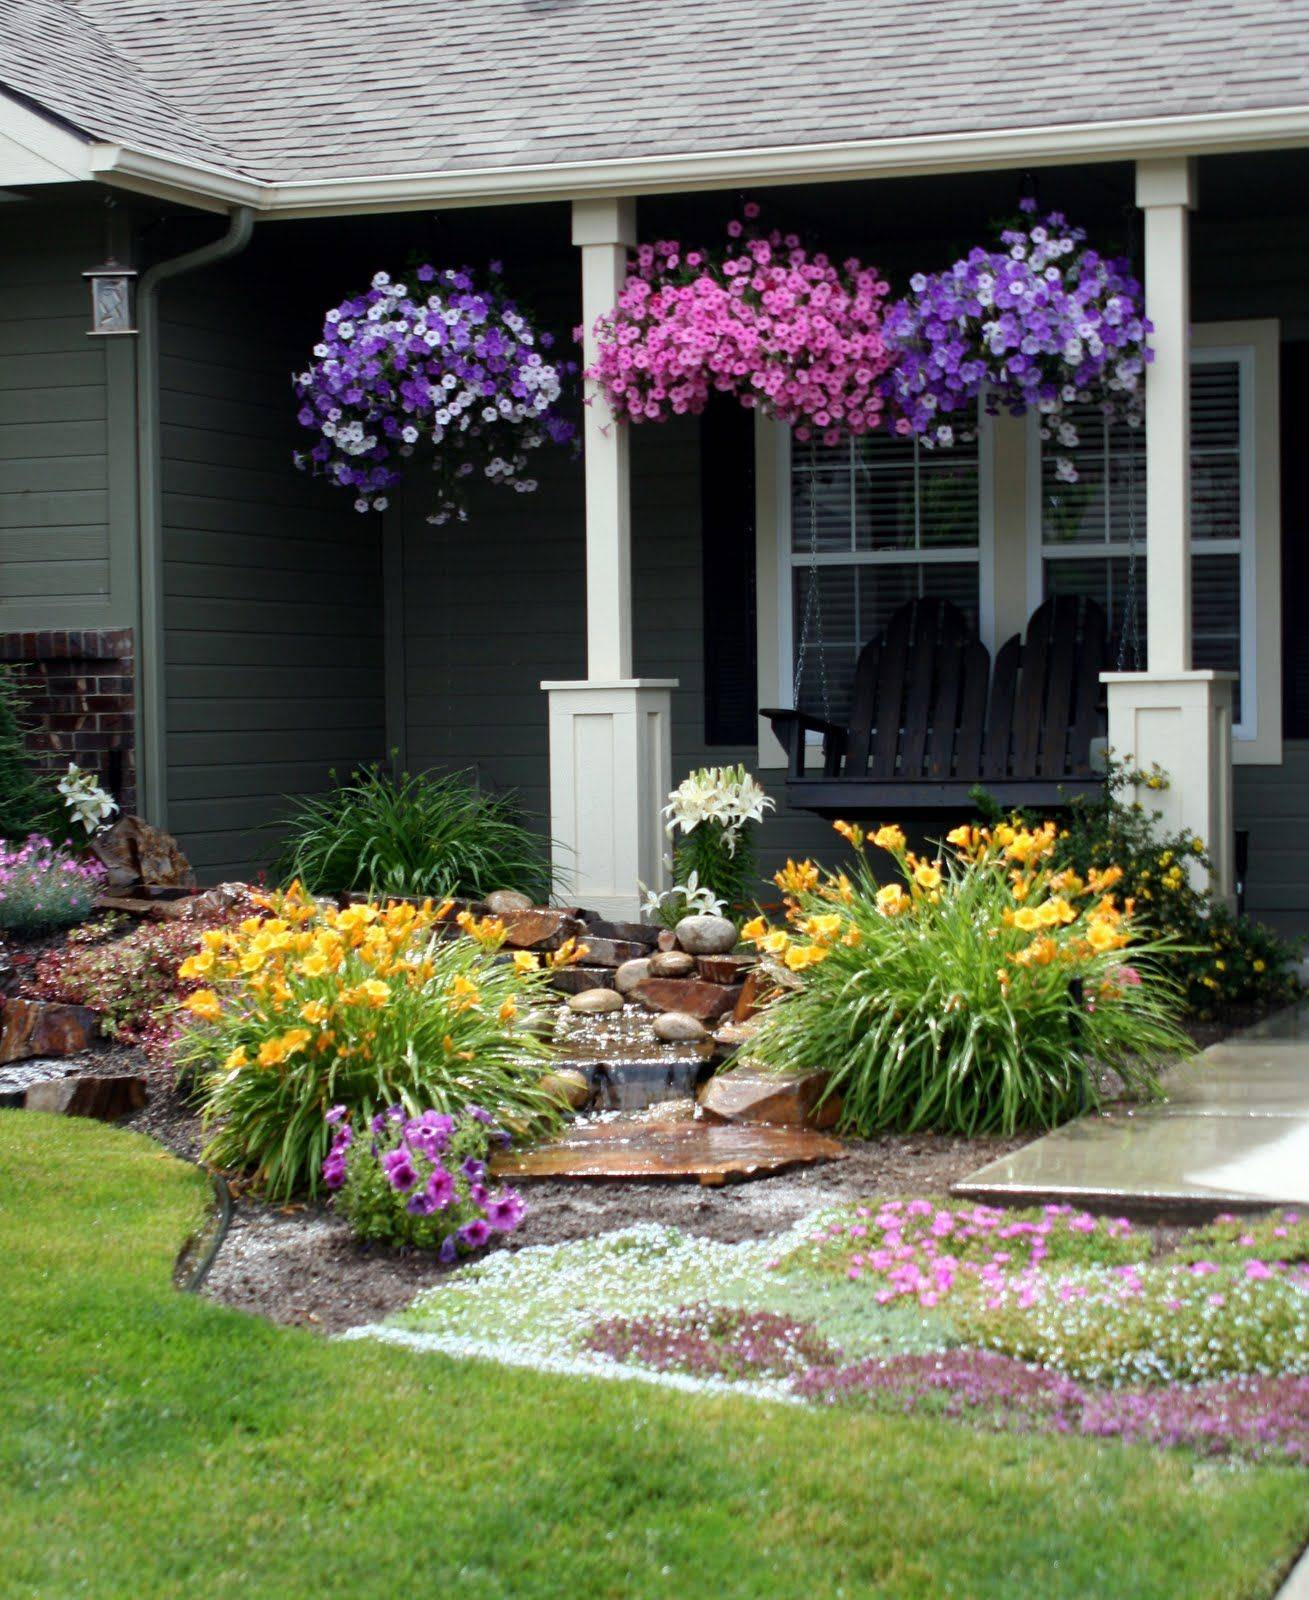 Remarkable Flower Bed Ideas Front Of House Awesome Our Kind Of Wonderful